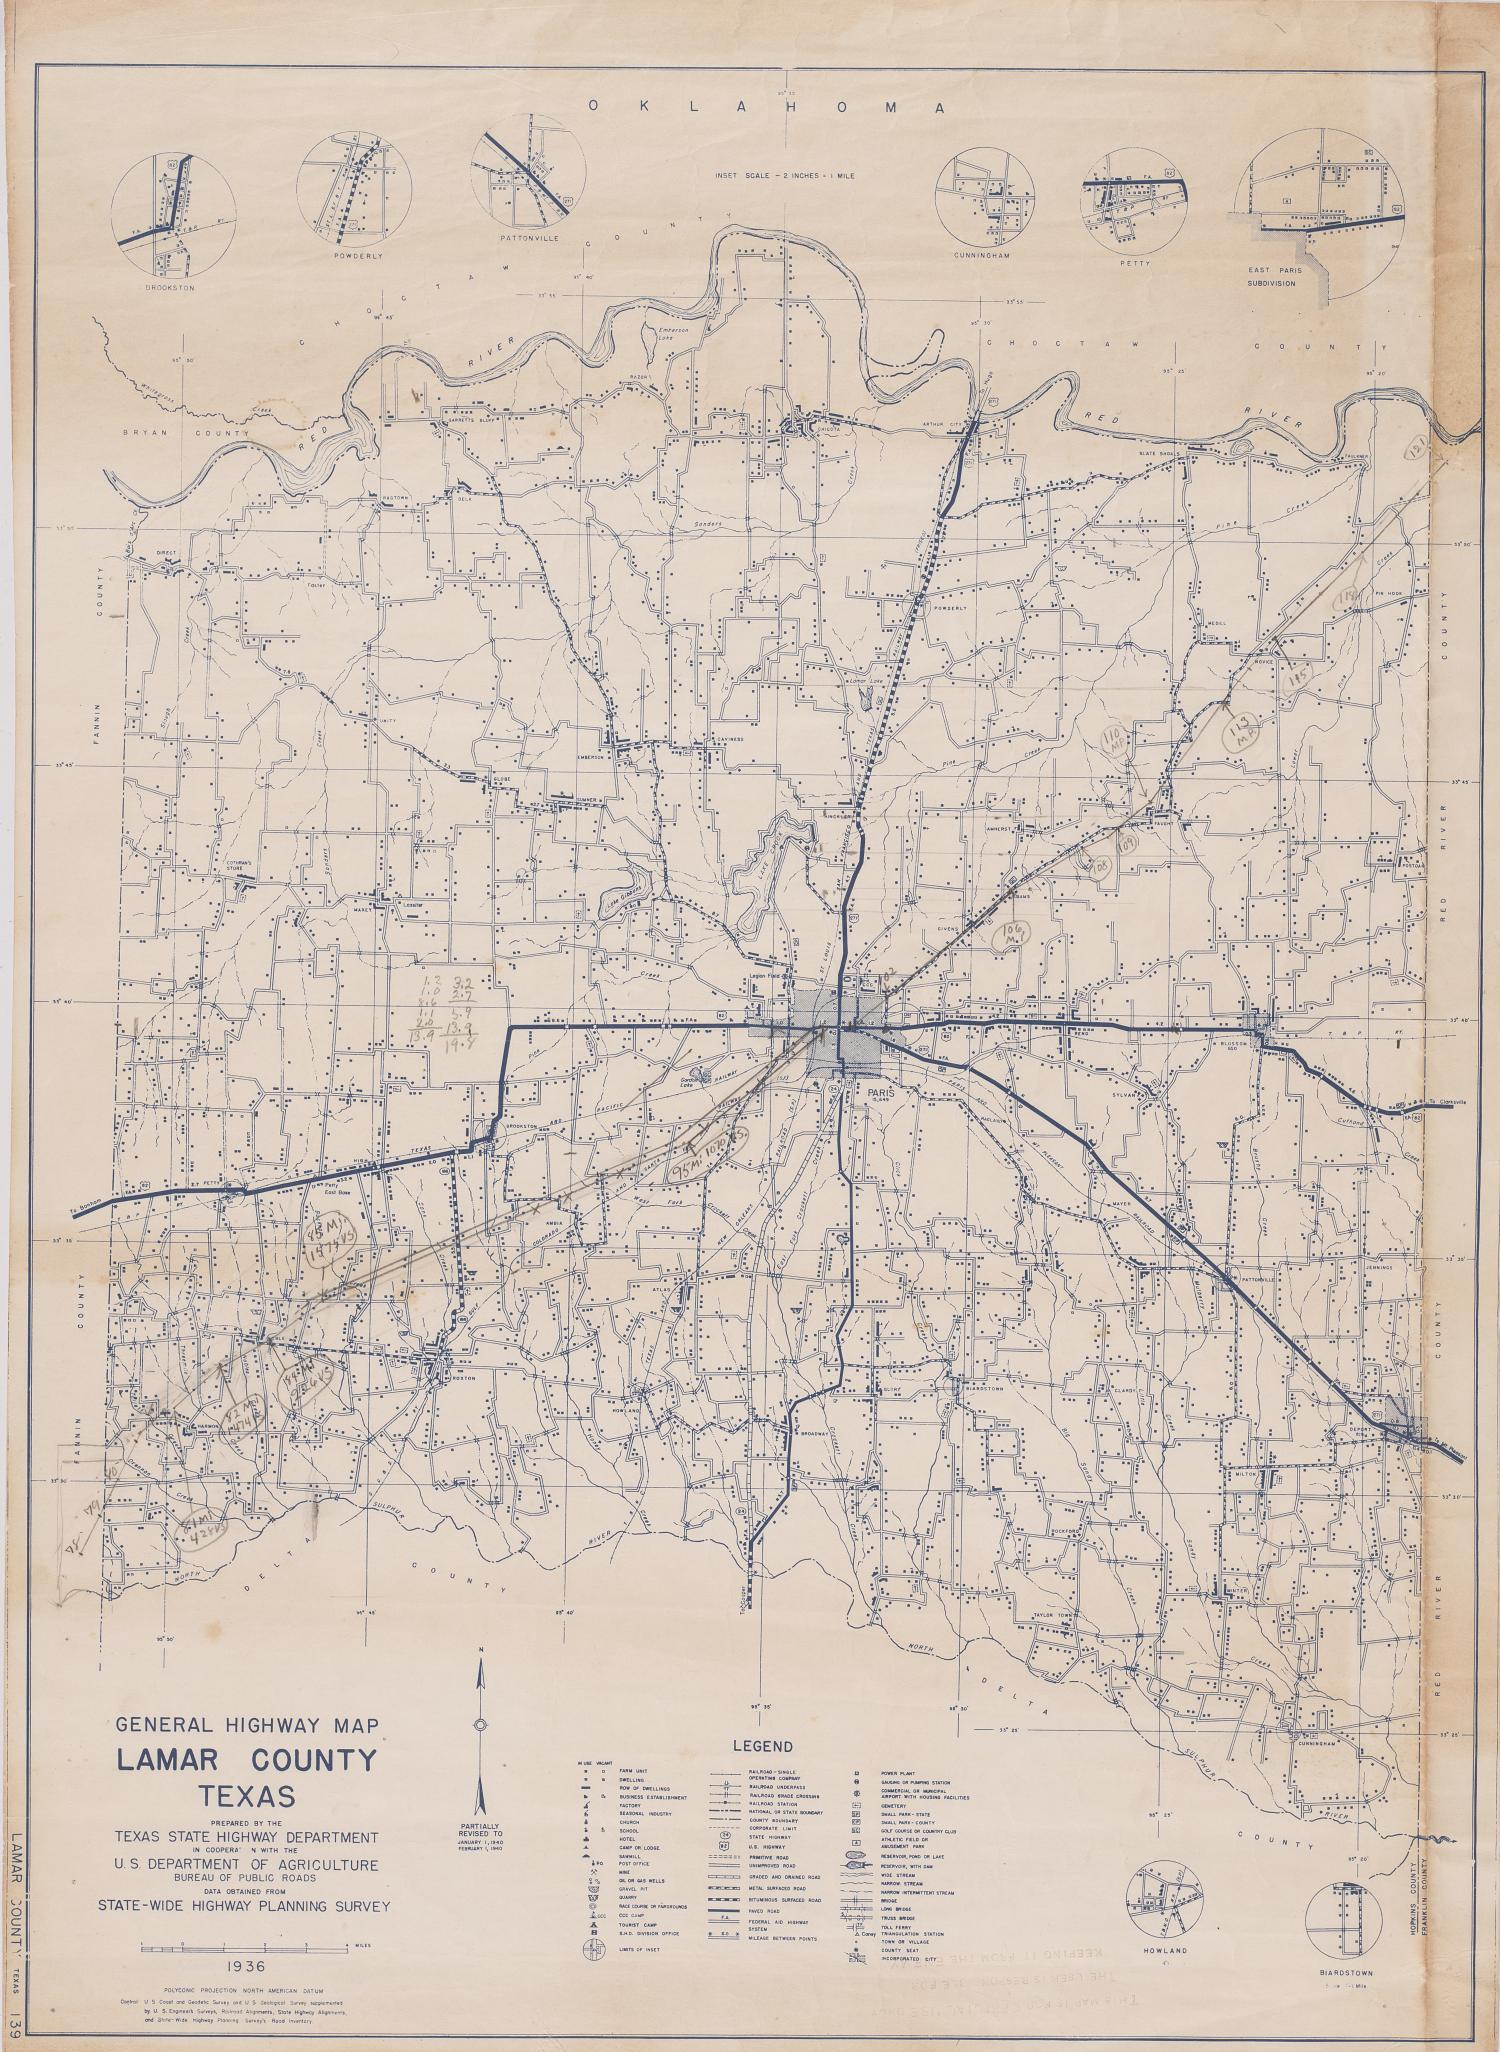 General Highway Map Lamar County Texas - Side 1 of 2 - The ...